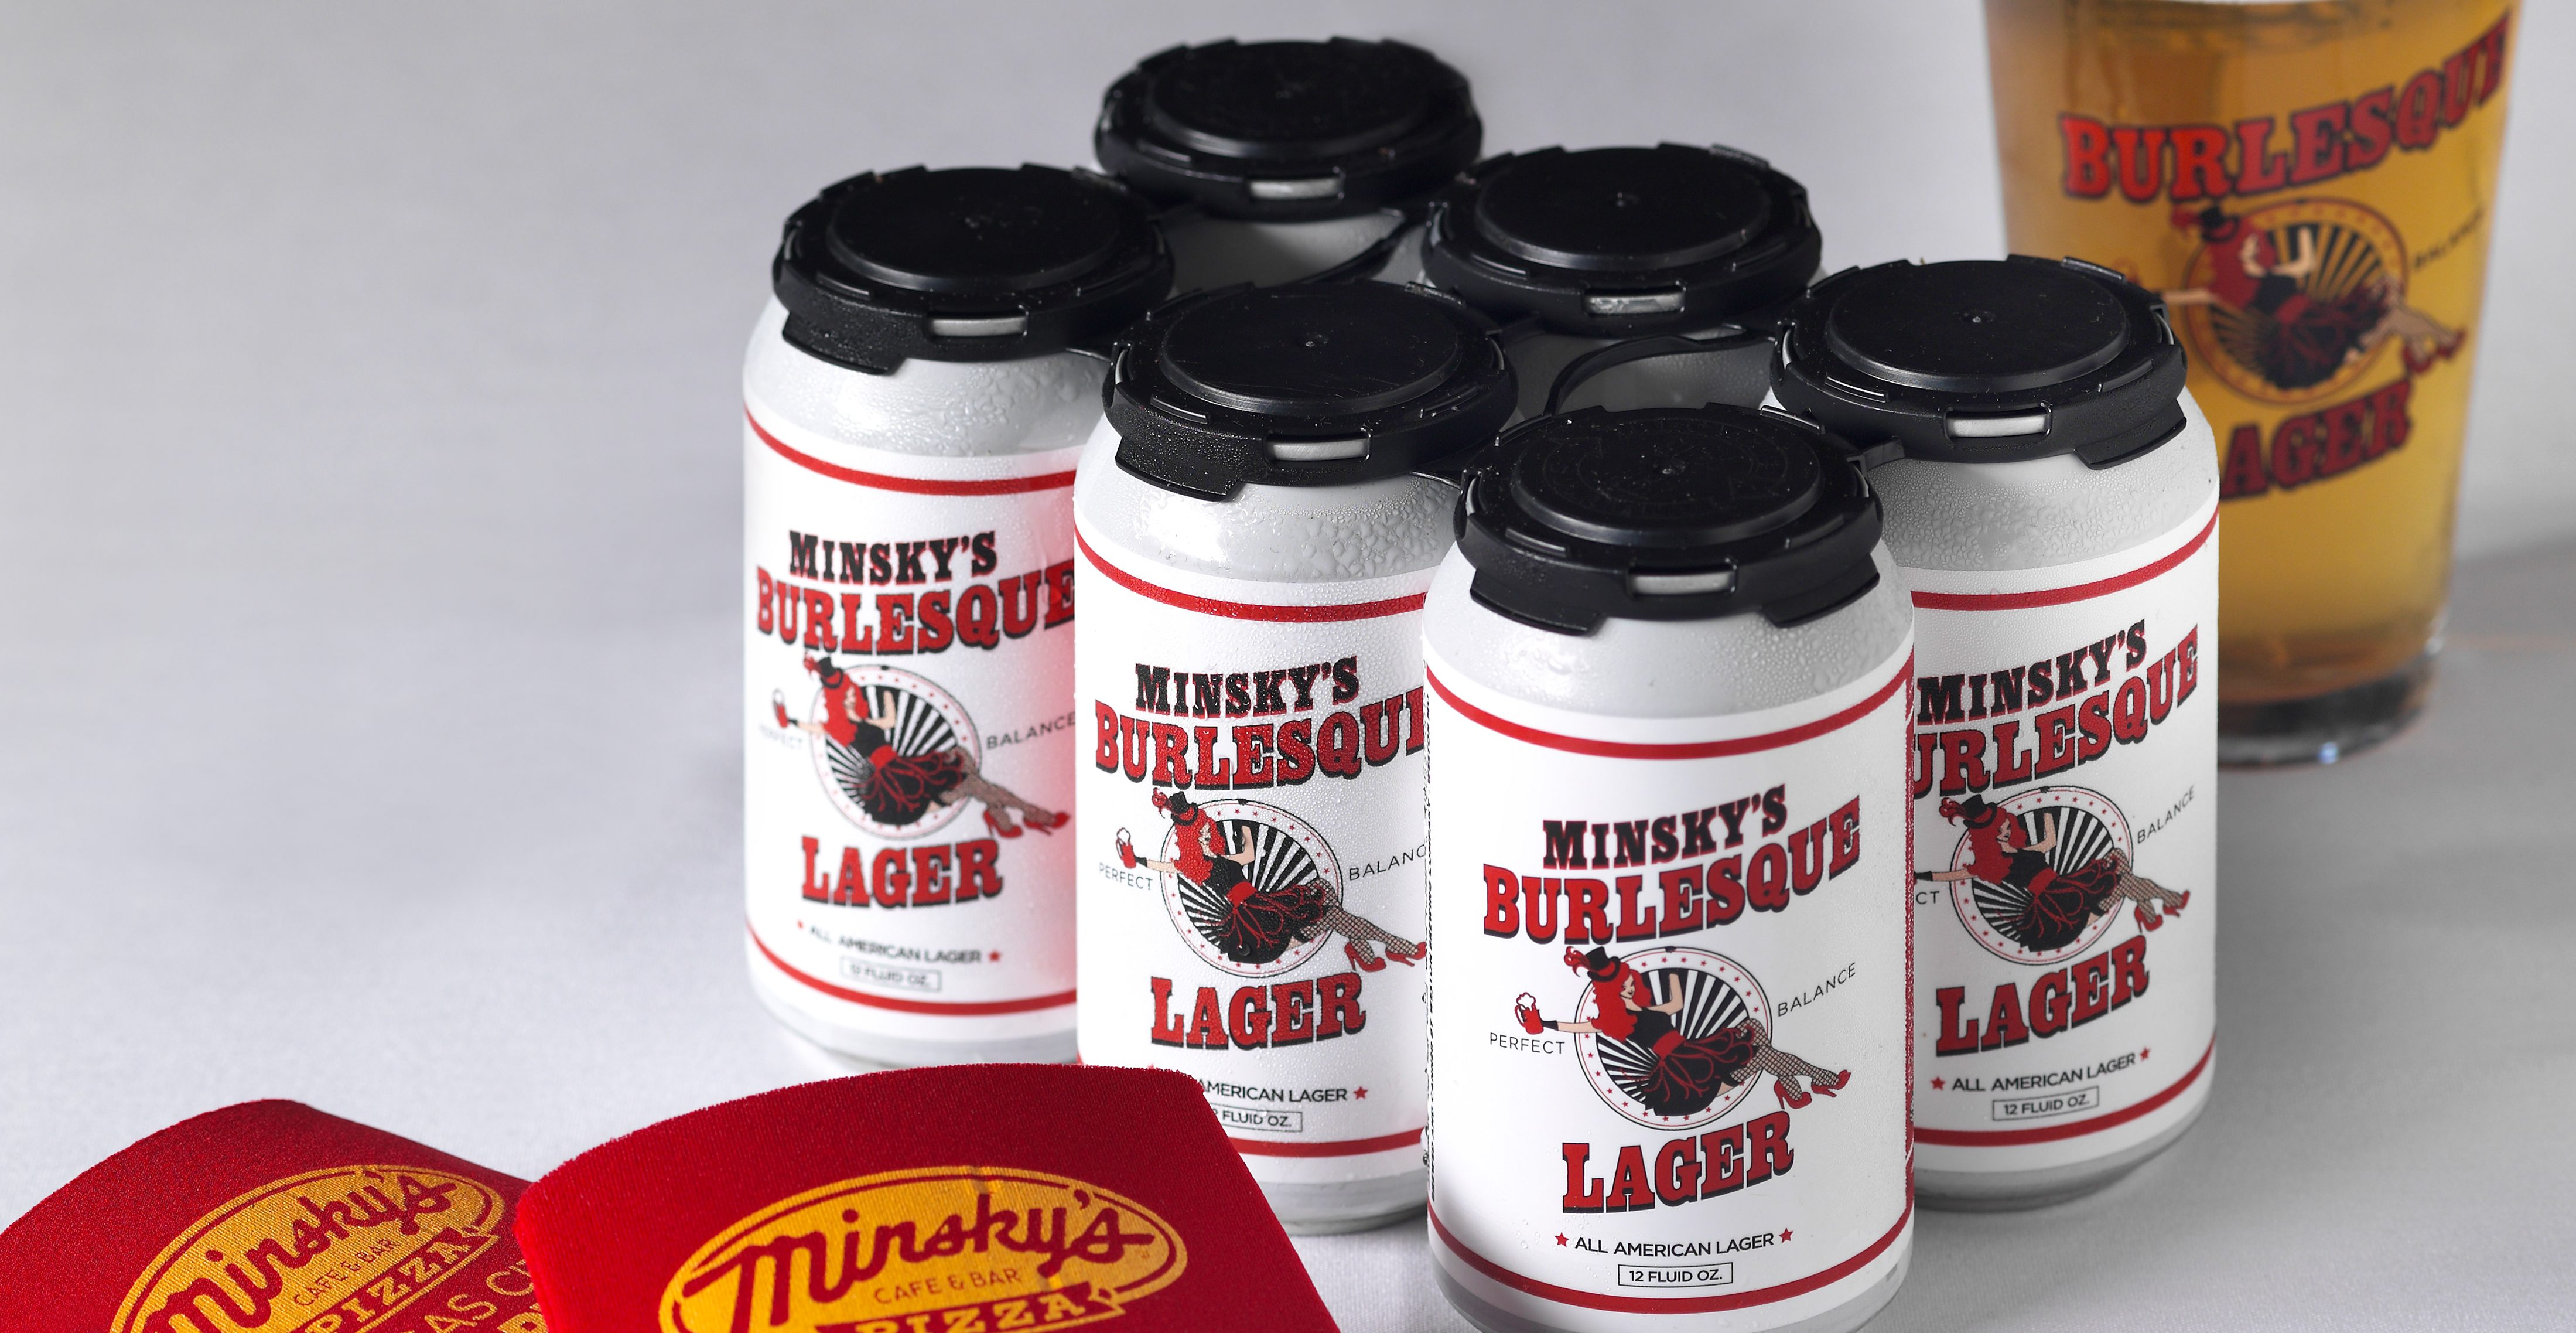 Minsky's Burlesque Lager – Now Available in Cans!